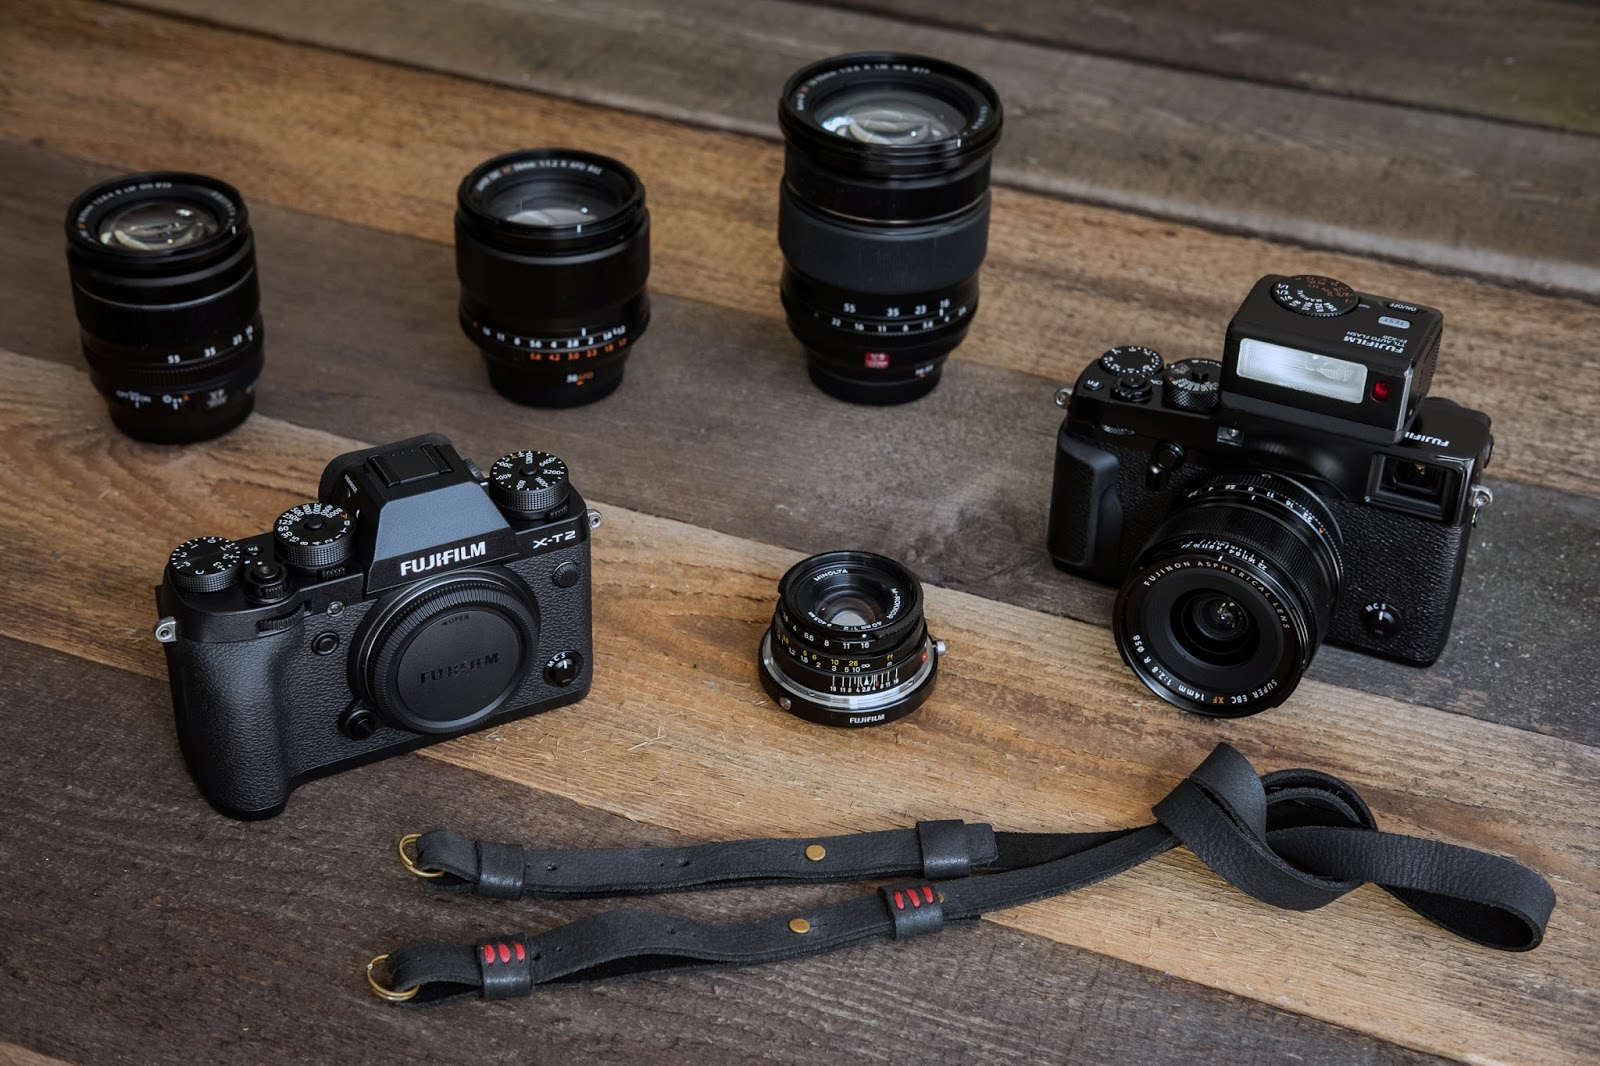 The Fujifilm X T2 Pro My 1st Impressions Xt2 Body Only This Is Official Press Release From North America Announcing New Vpb Power Grip And Ef X500 Flash Unit